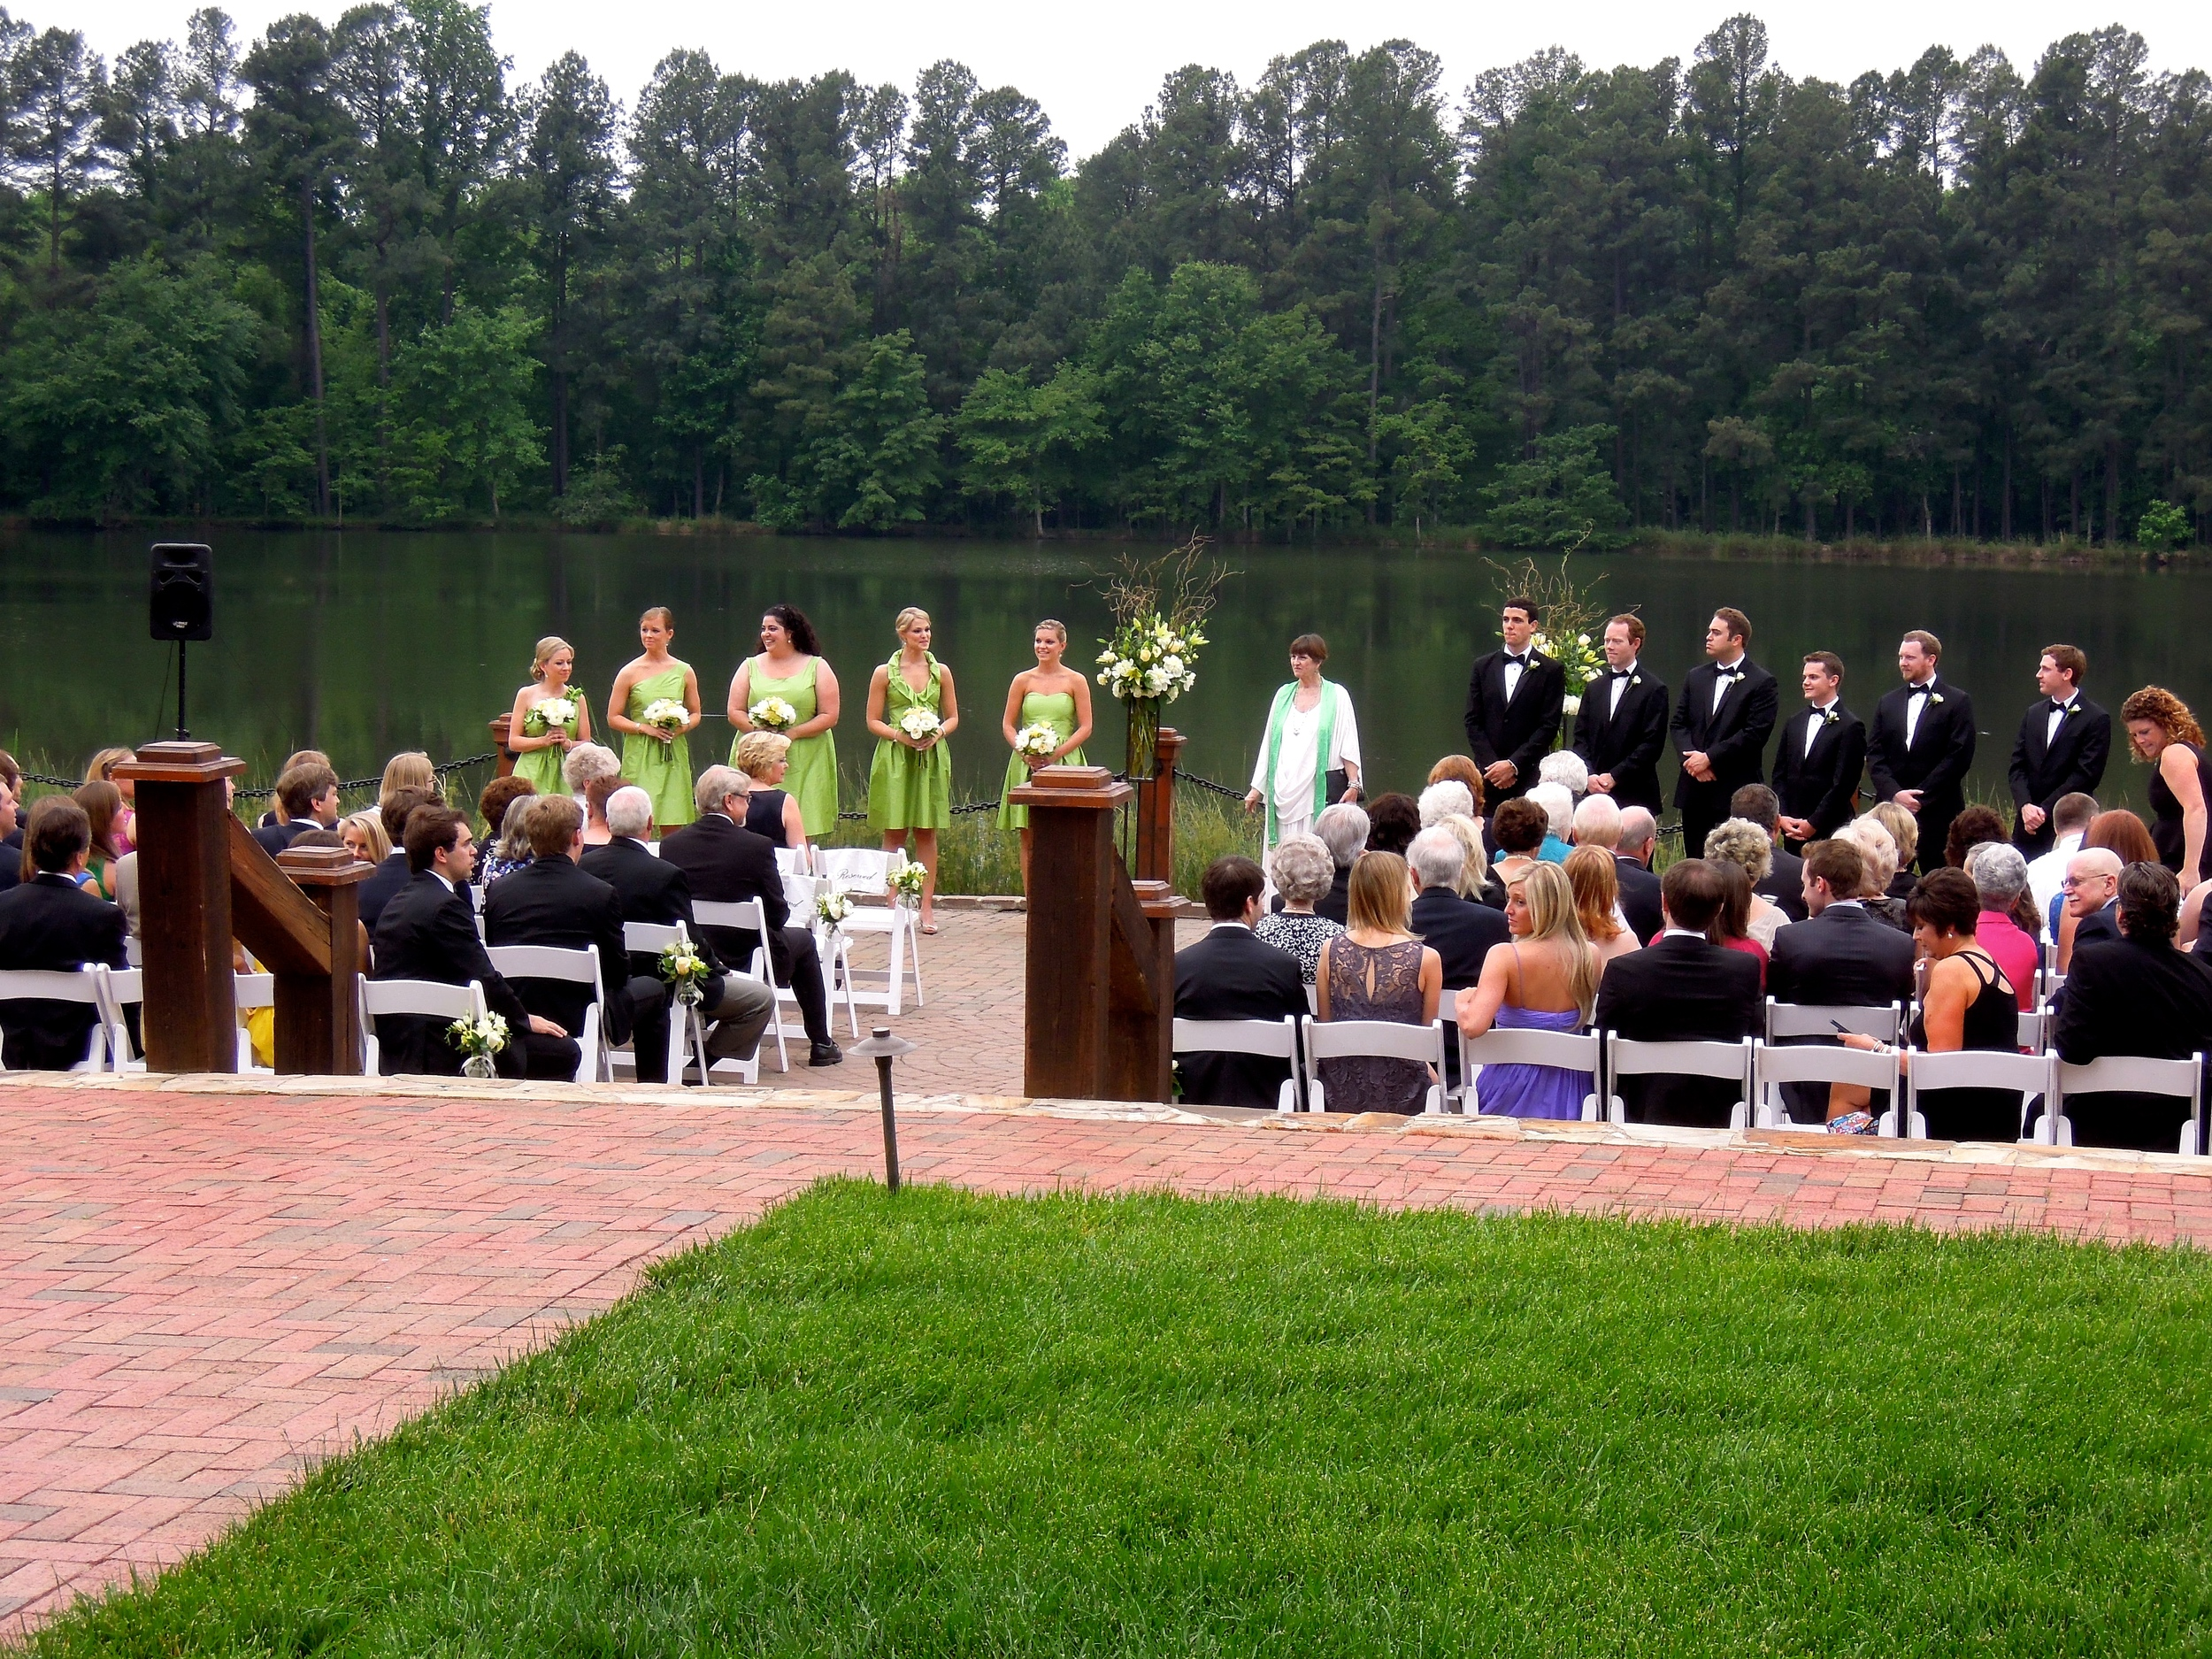 Another fabulous wedding at The Pavilion at Angus Barn in Raleigh